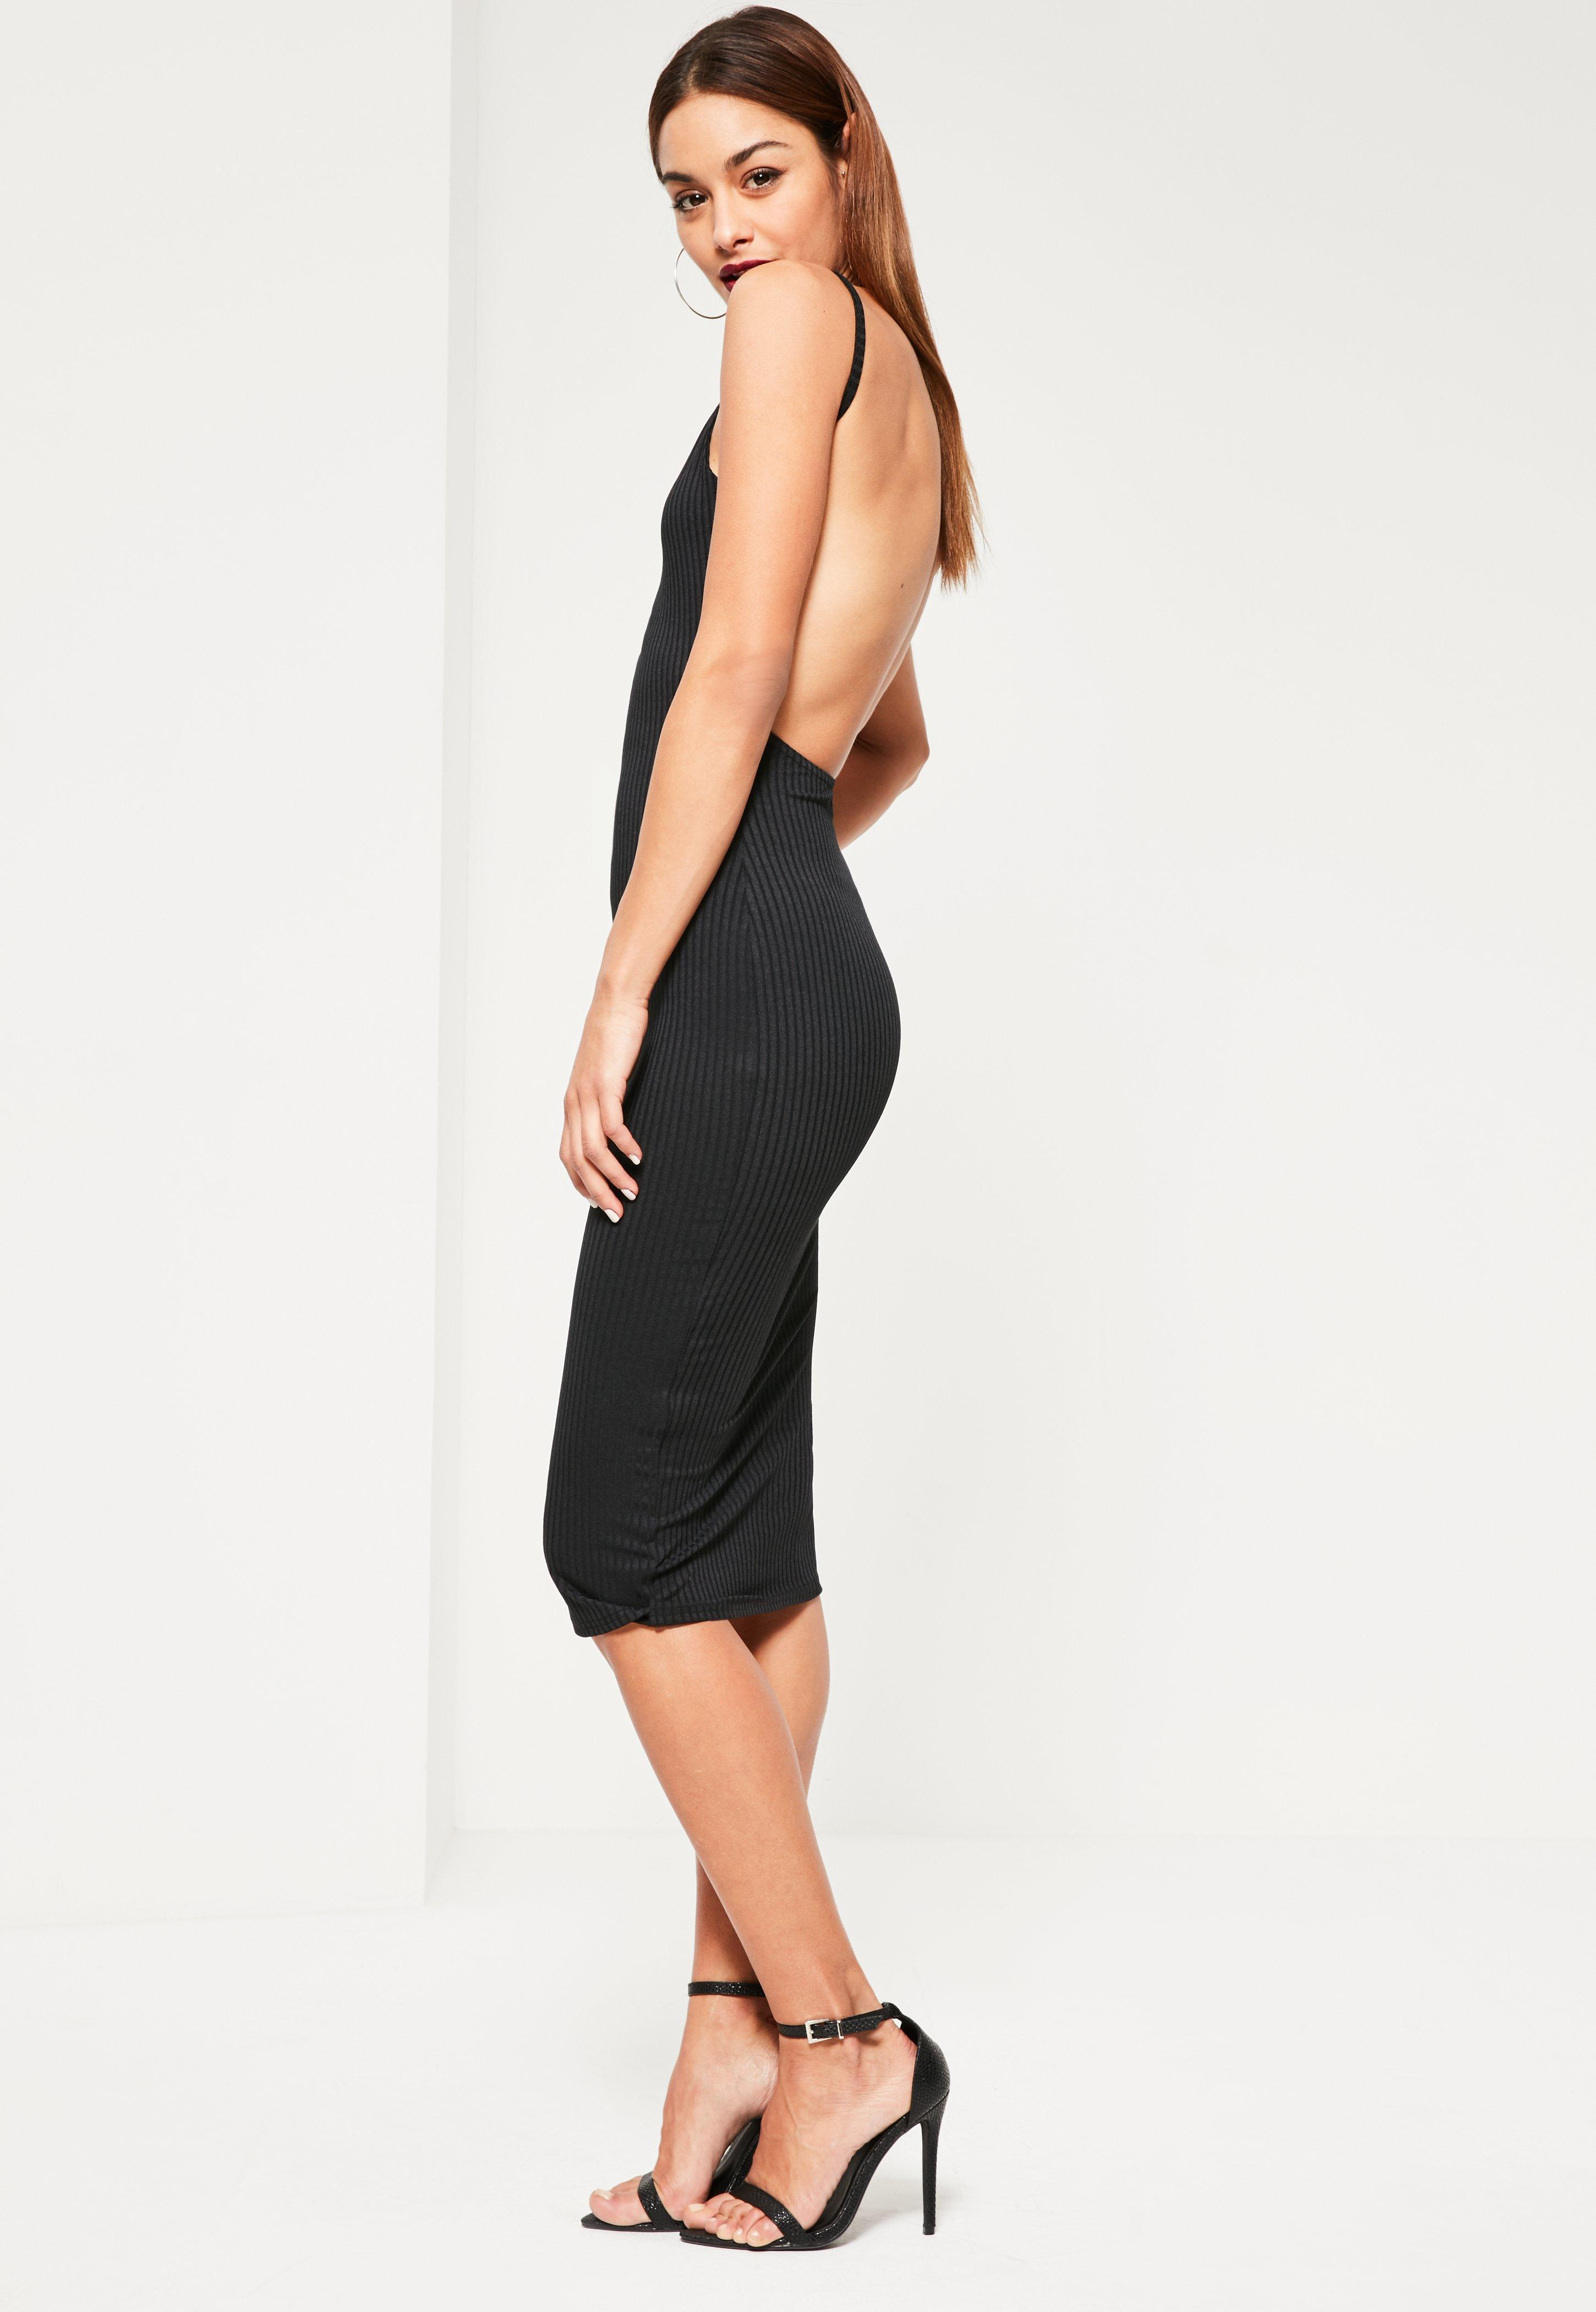 Backless dresses open low back dresses missguided ombrellifo Gallery